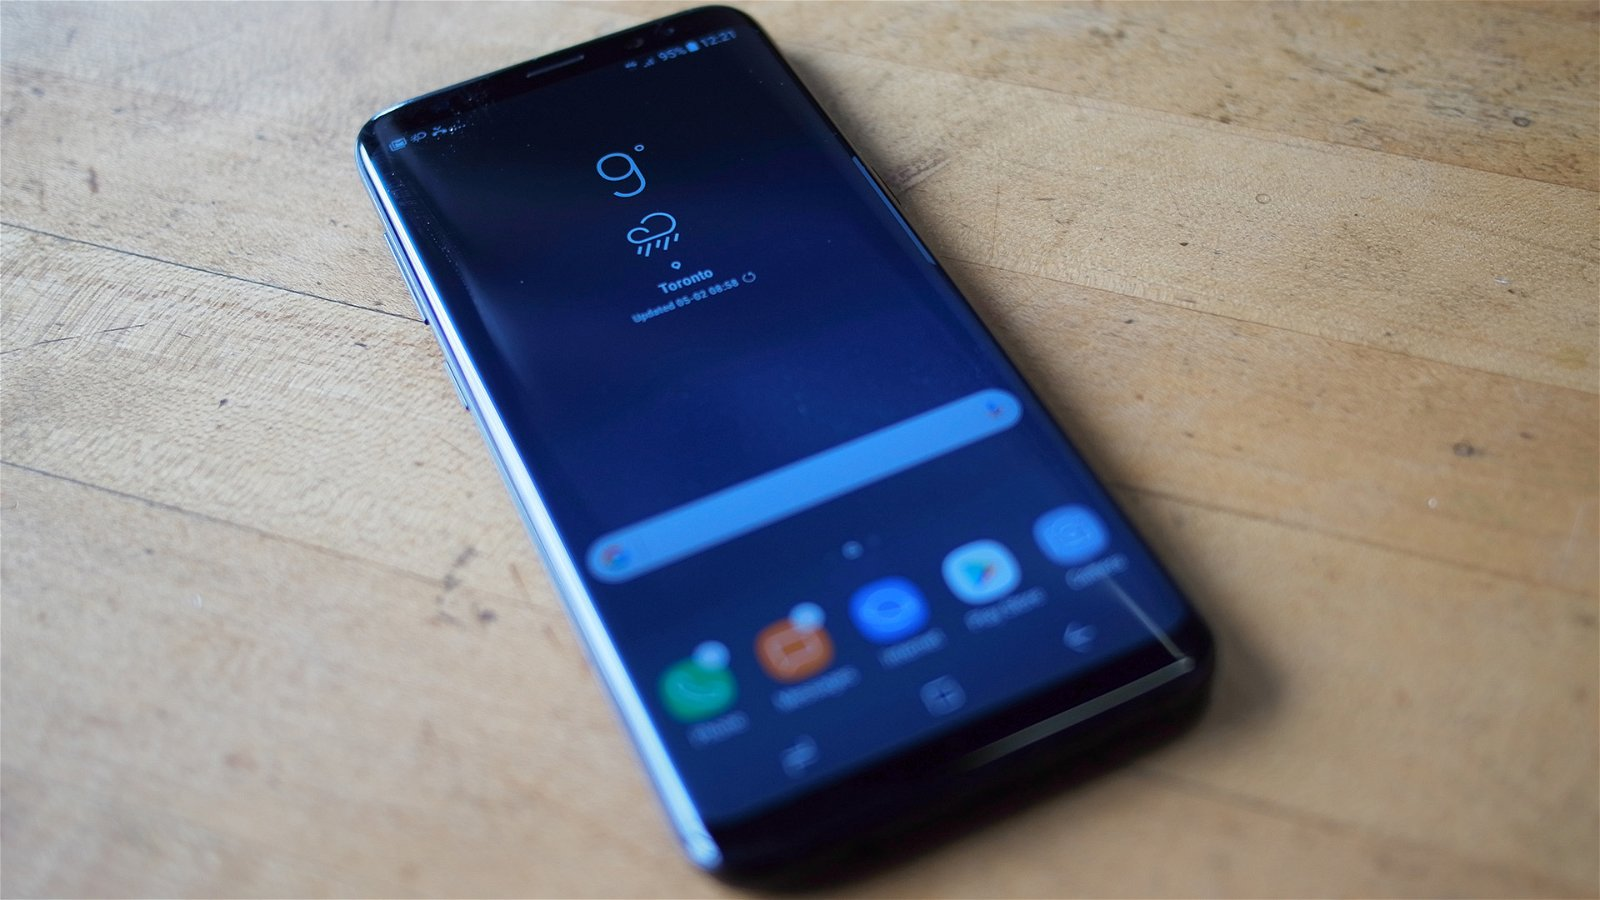 Samsung Galaxy S8 Review - A Feat in Engineering 13